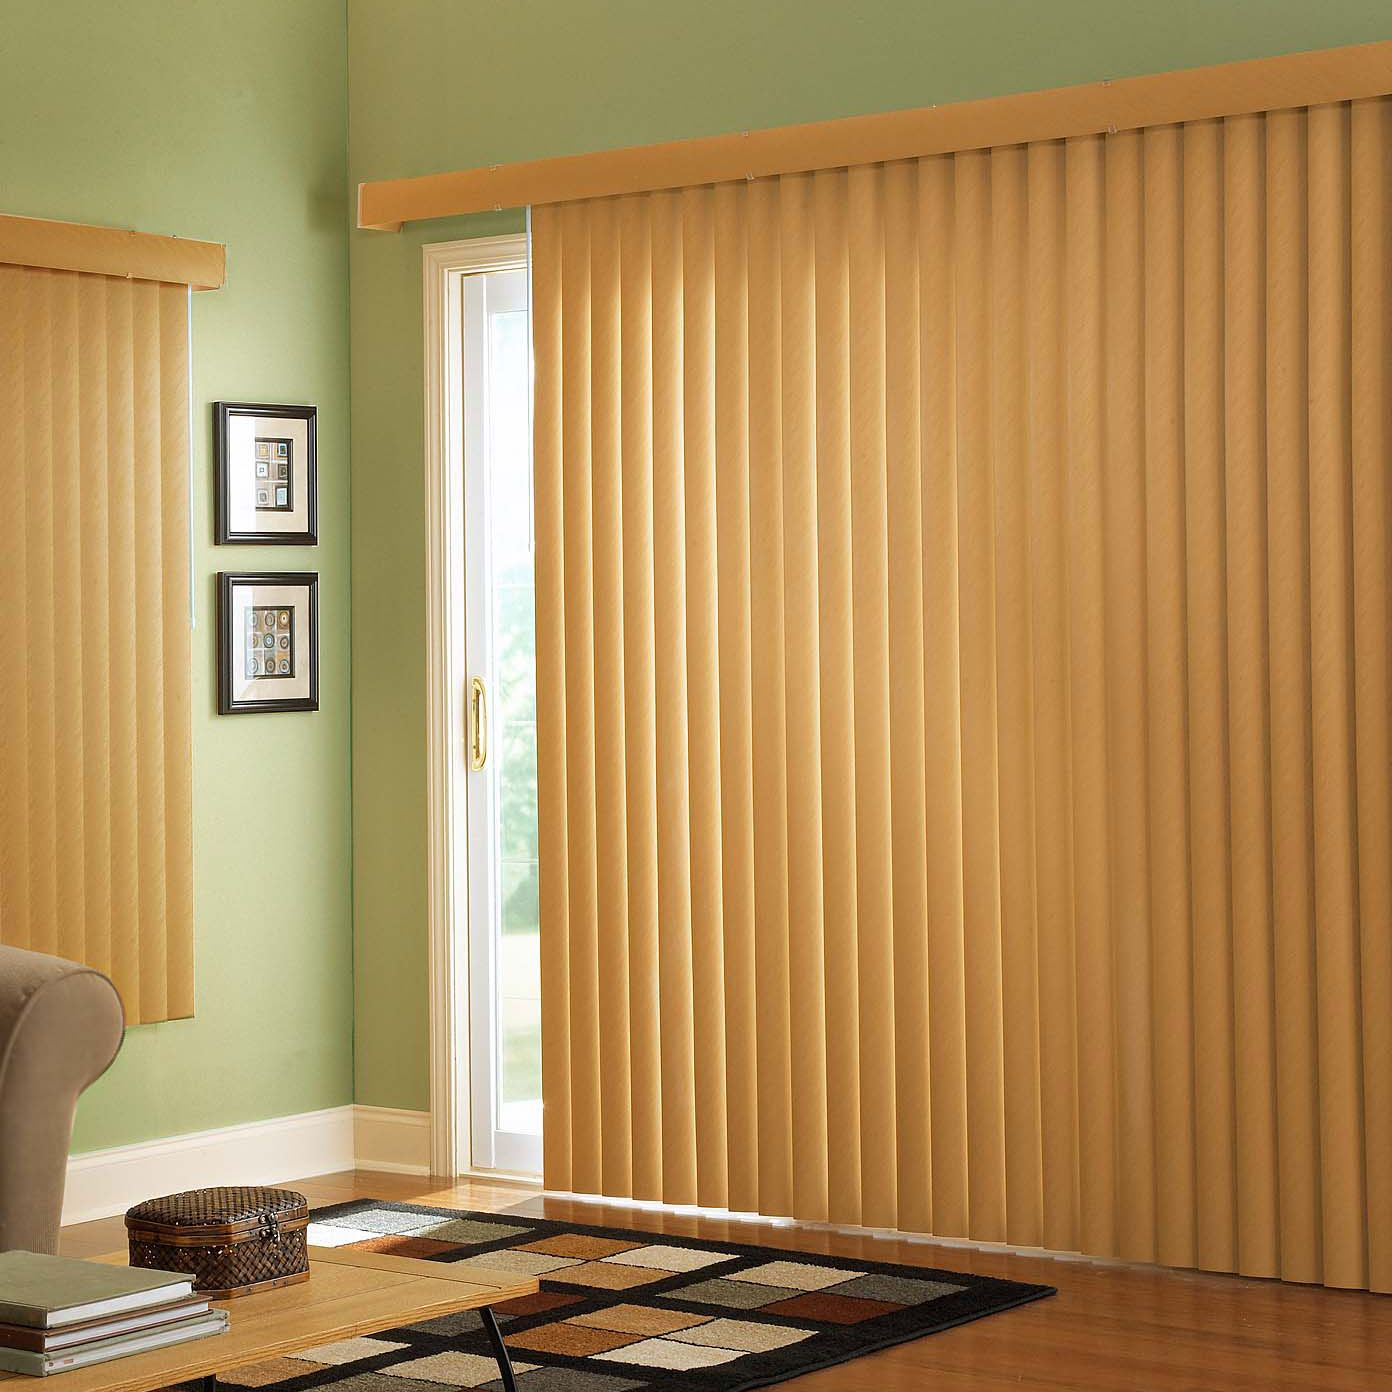 Most Common Types Of Window Blinds HomesFeed